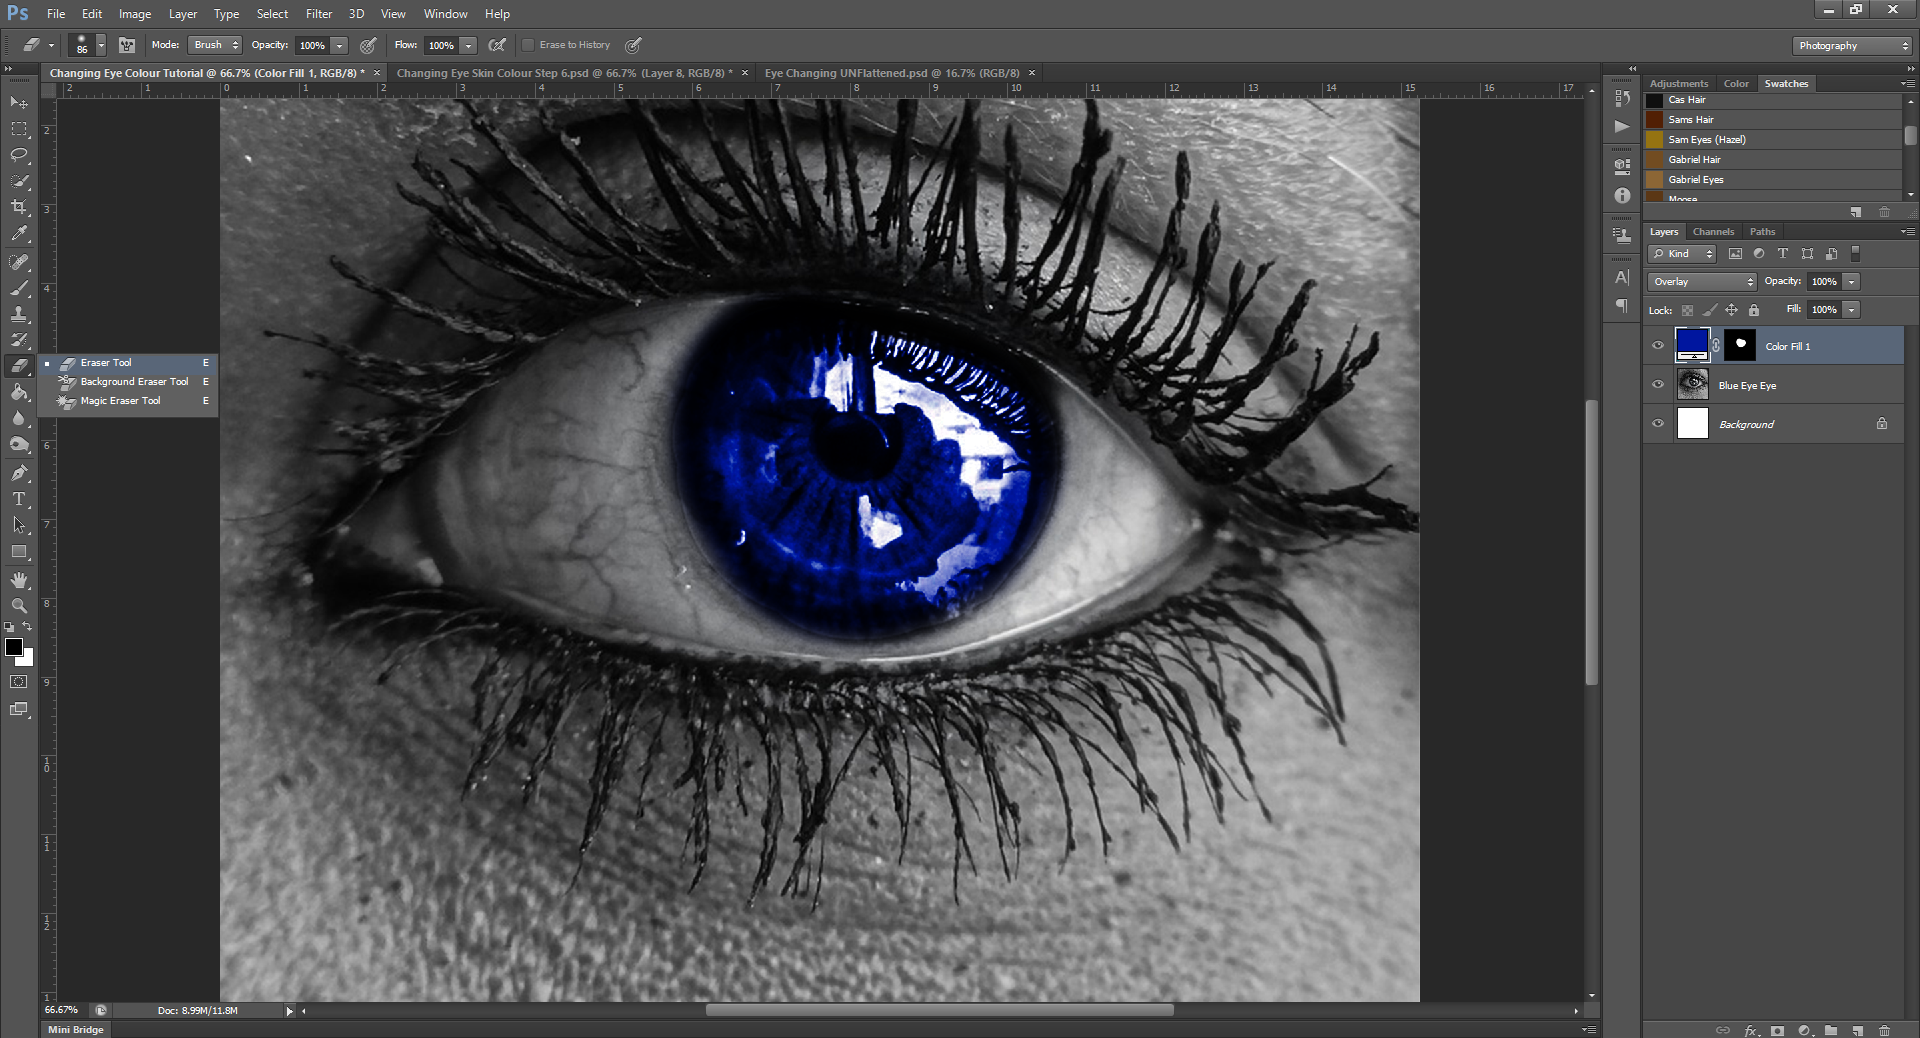 AterImber.com - Writing Tips - Photoshop Tutorial Series - PHSH Effect 15 Changing Eye/Skin Colour - Step 8 - phsh, phsh effect, phsh tutorial, tutorial, photoshop tutorial, indie author help, book covers, writing tips